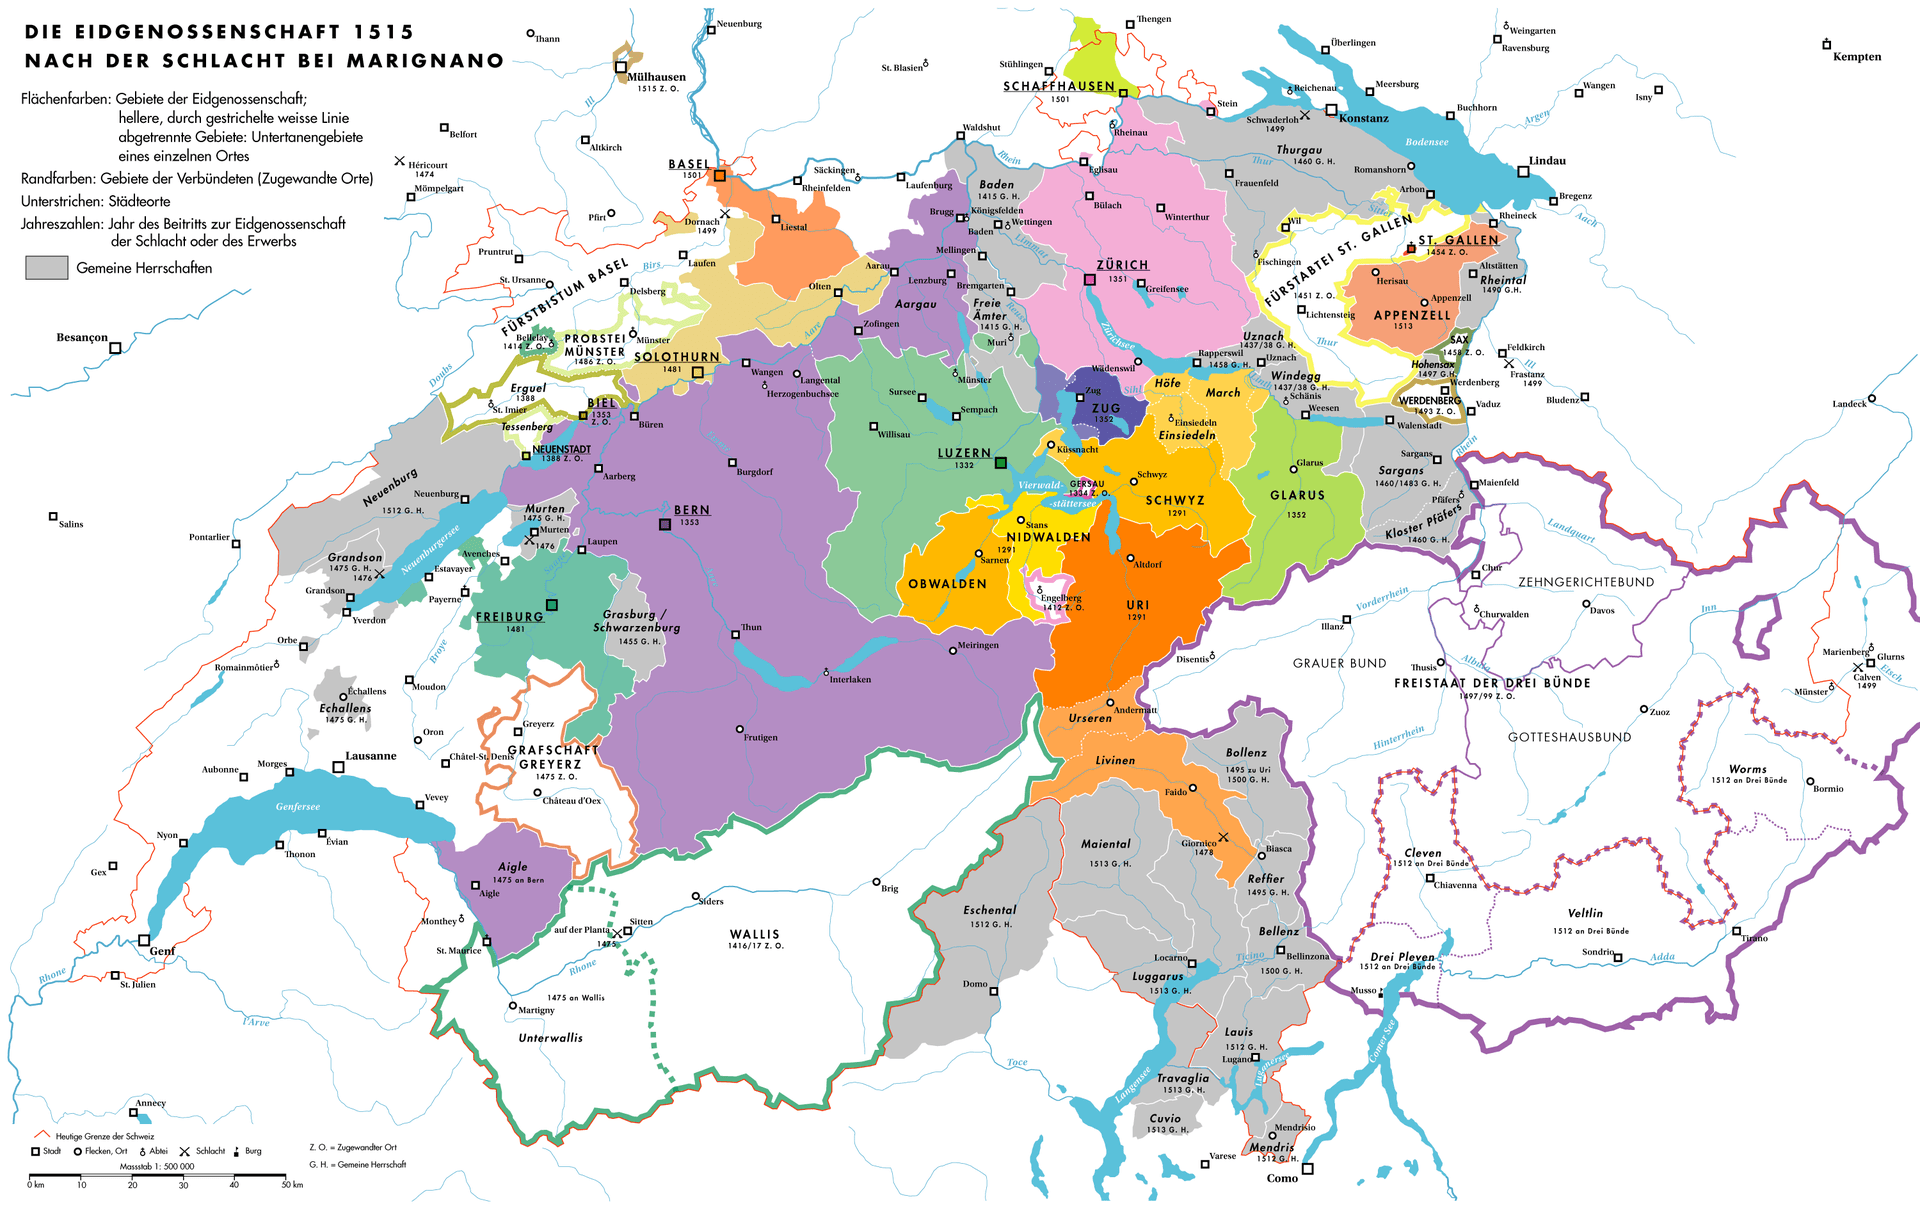 A map of the Confederation in 1515 after the Burgundian Wars.